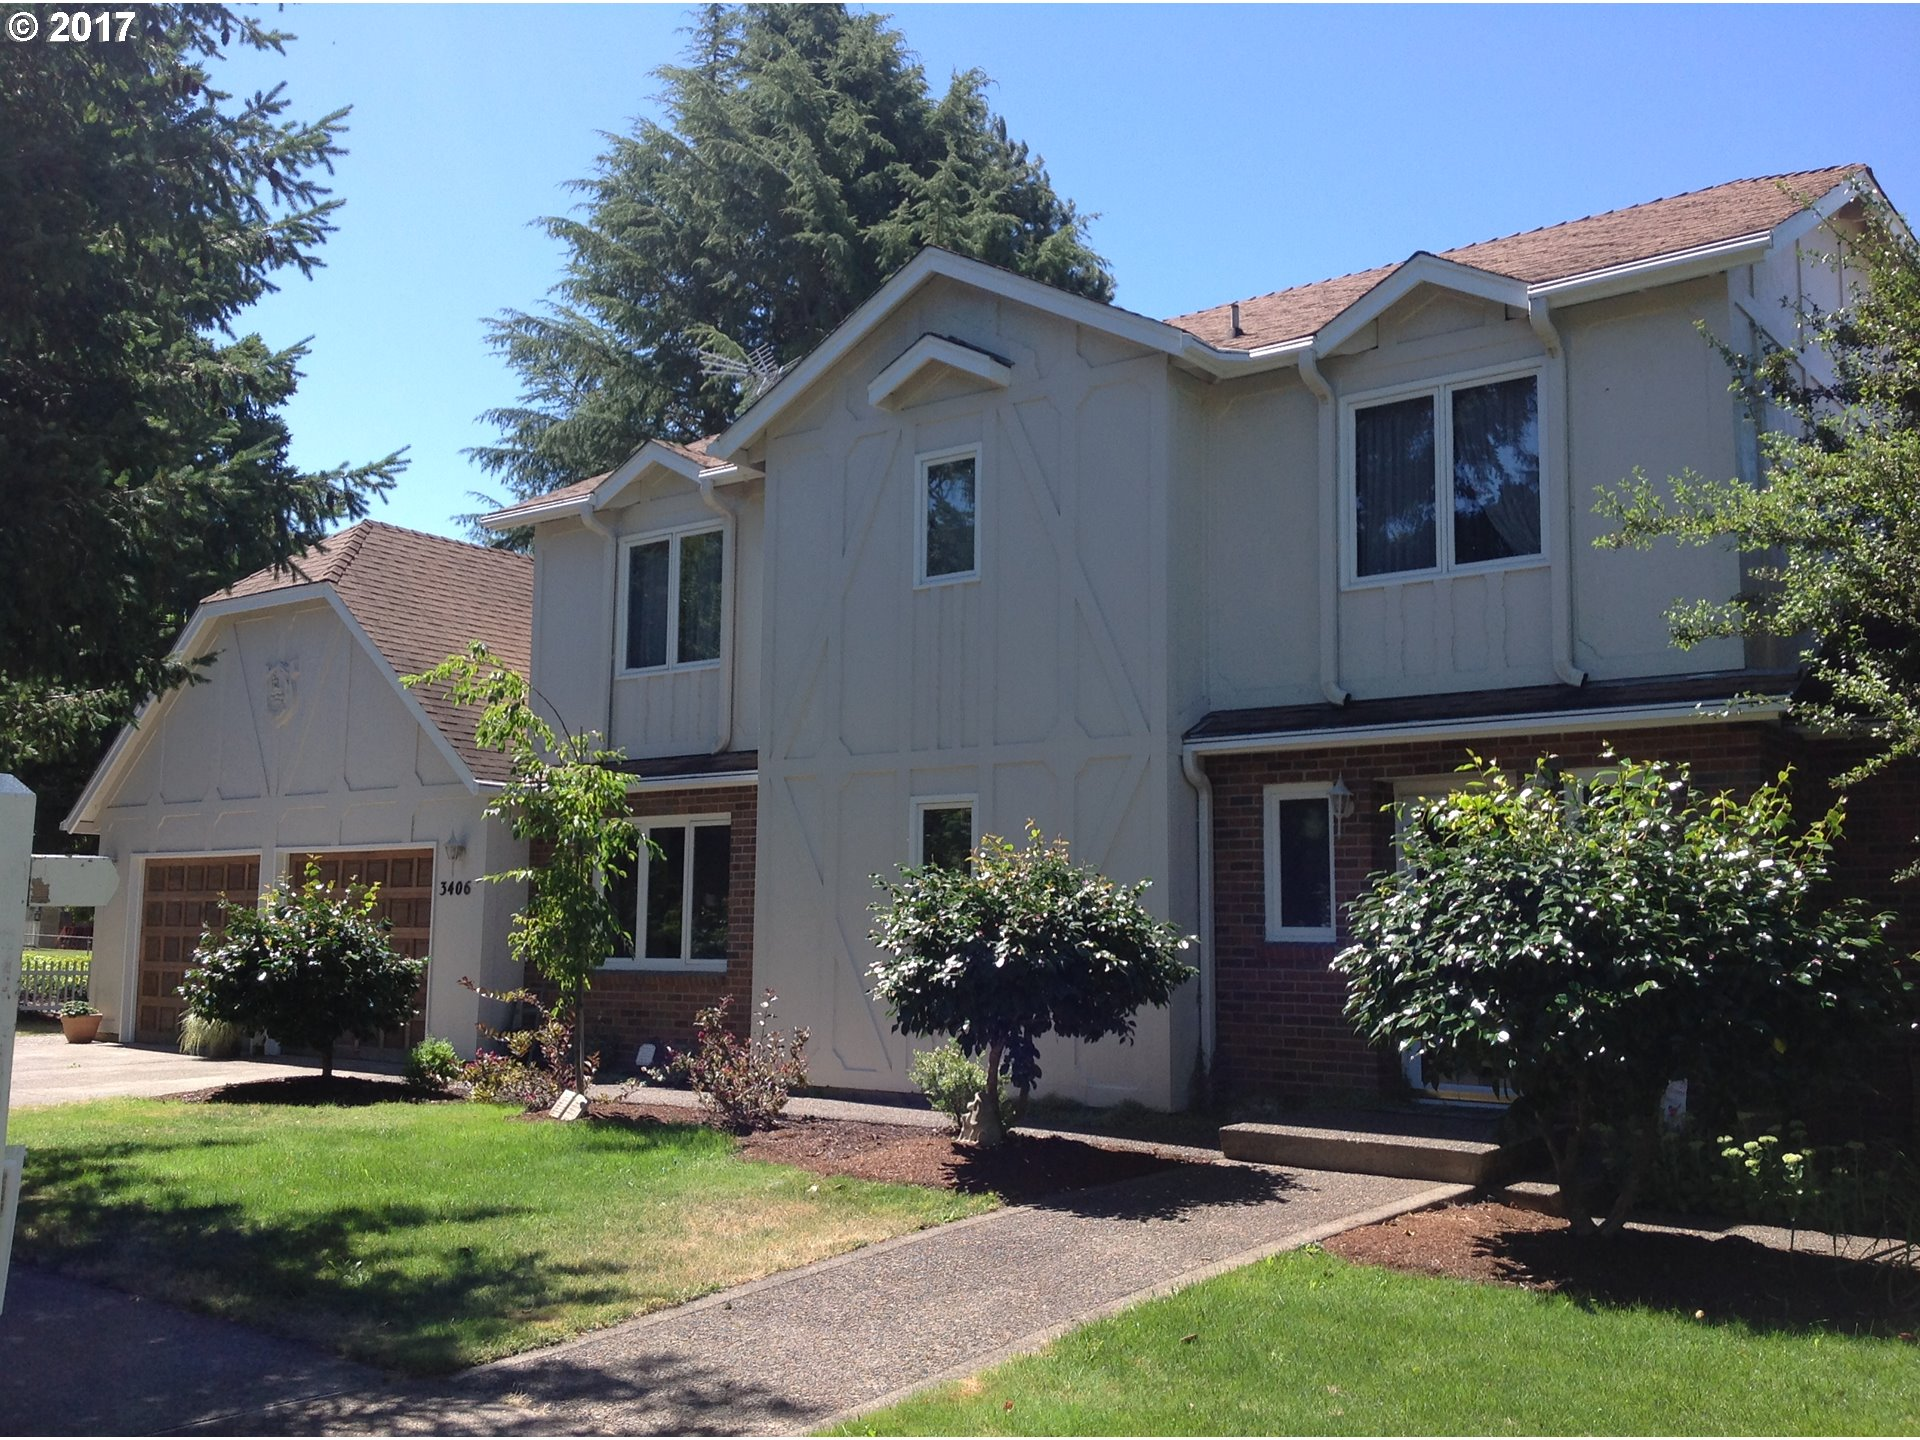 3406 LAVINA DR, Forest Grove, OR 97116